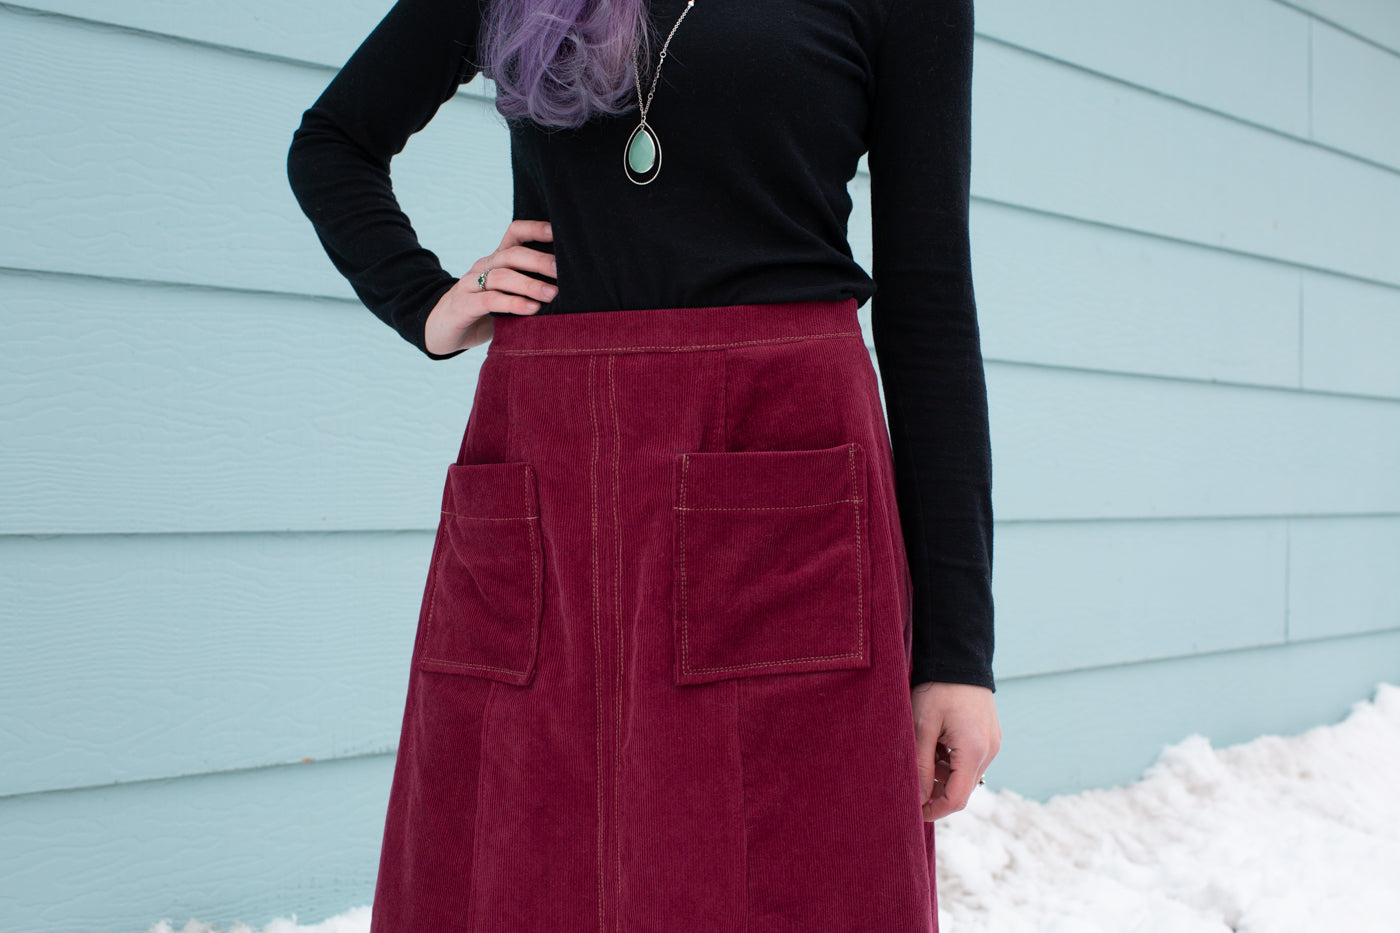 Aly standing in snow against a sea blue wall wearing a Reed Skirt in merlot corduroy and black long sleeve top. Close-up photograph of the the pockets with white stitching on the skirt..